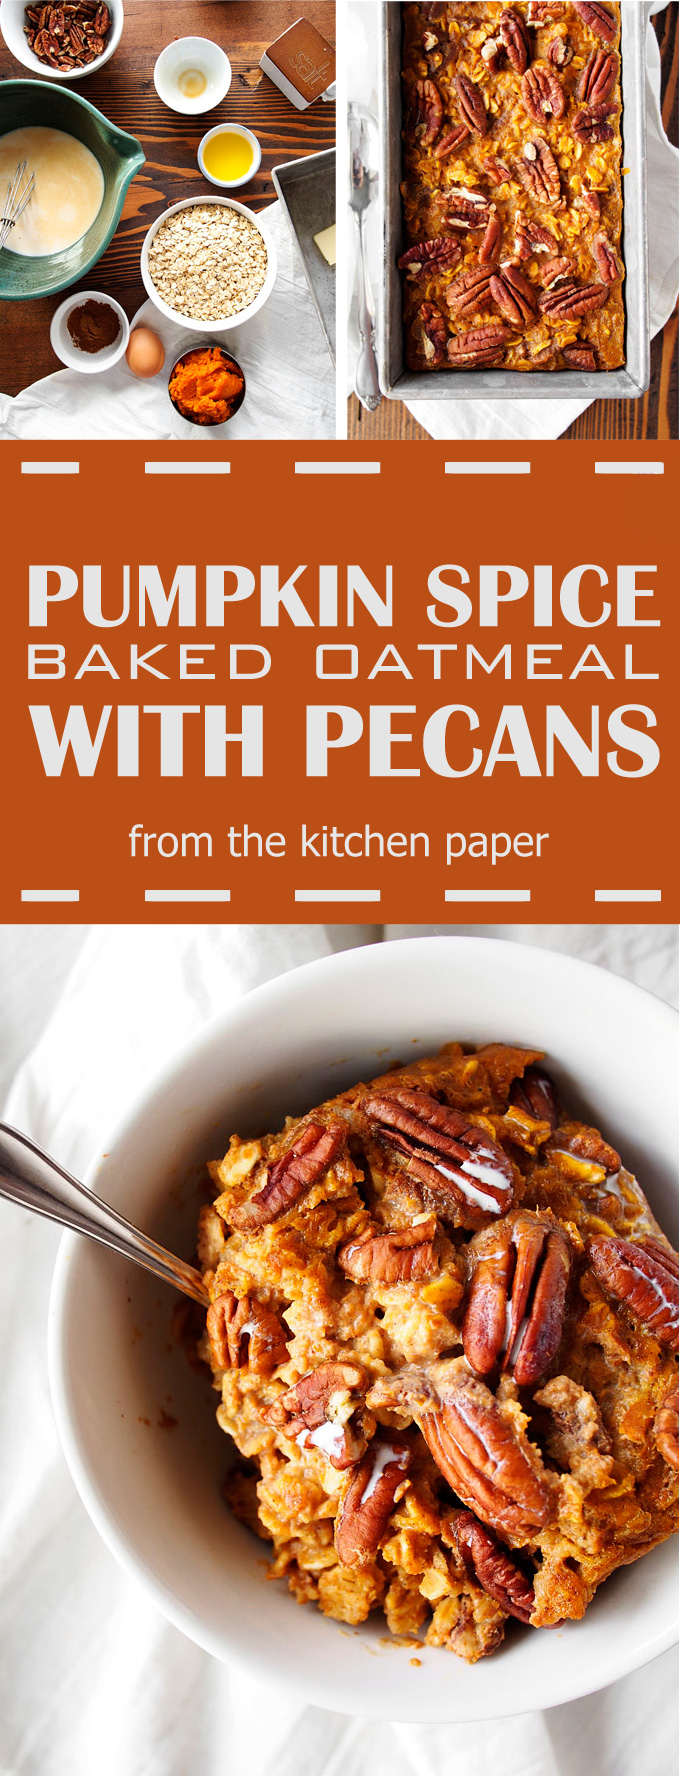 Pumpkin Spice Baked Oatmeal Recipe – The Kitchen Paper